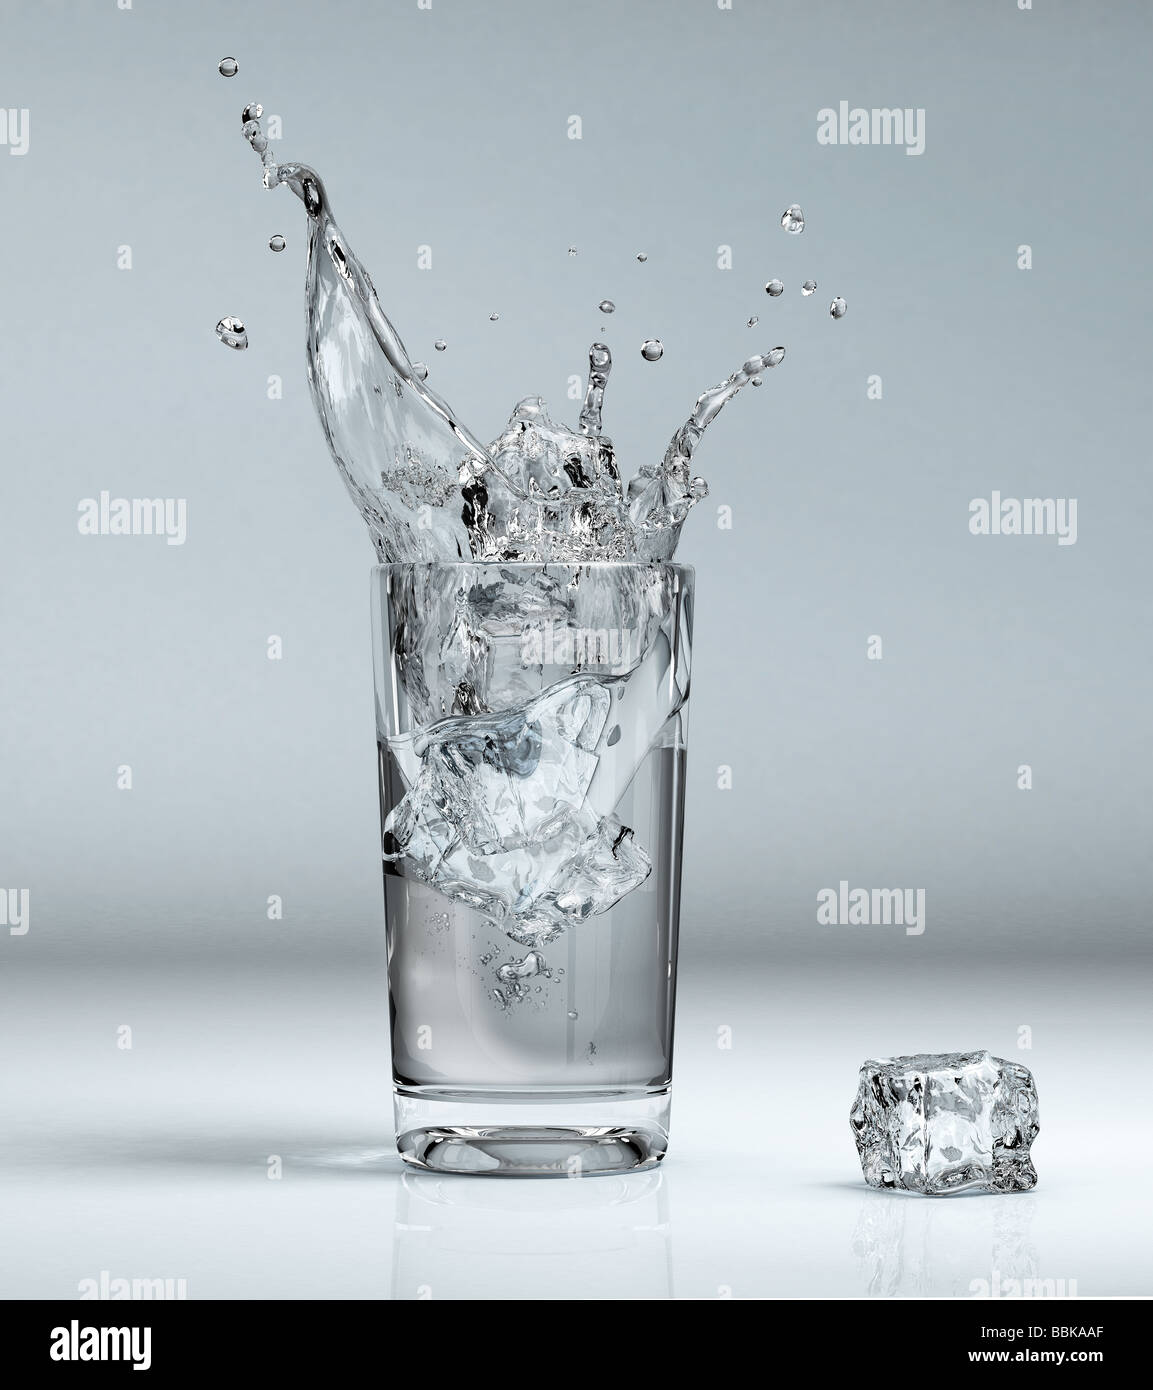 ice cube splashing into a glass full of water - Stock Image